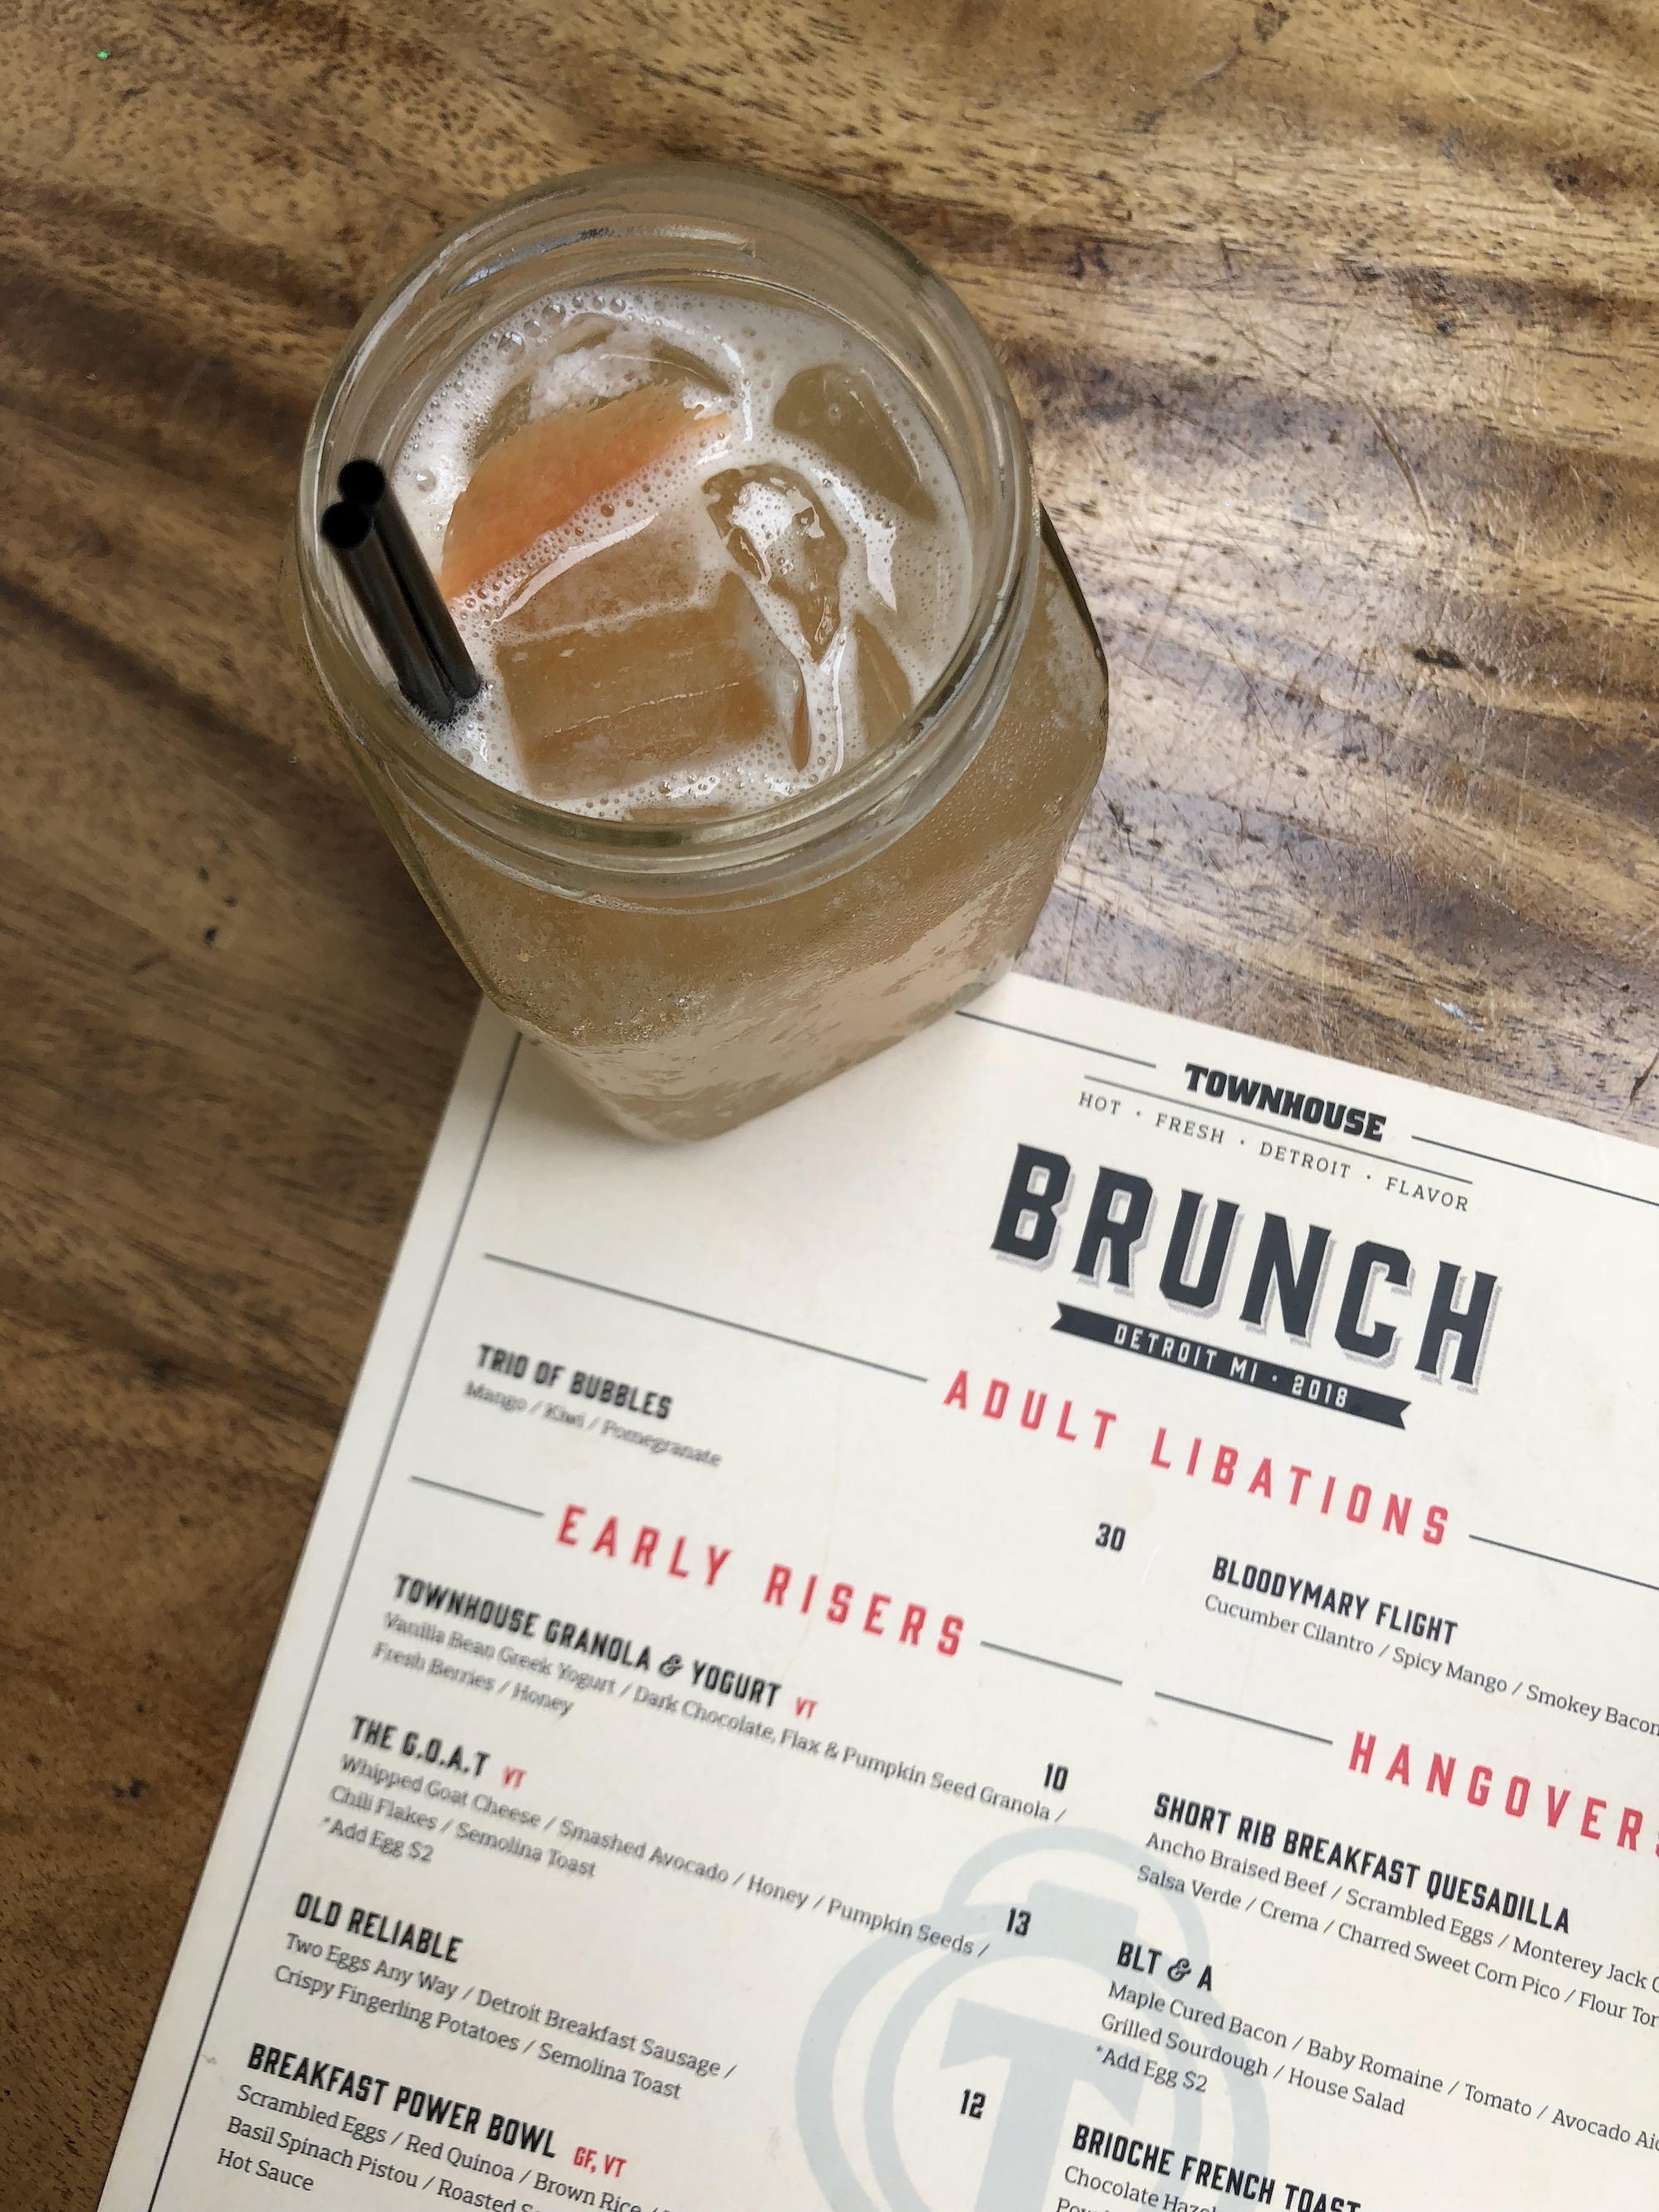 Brunch cocktails from Townhouse